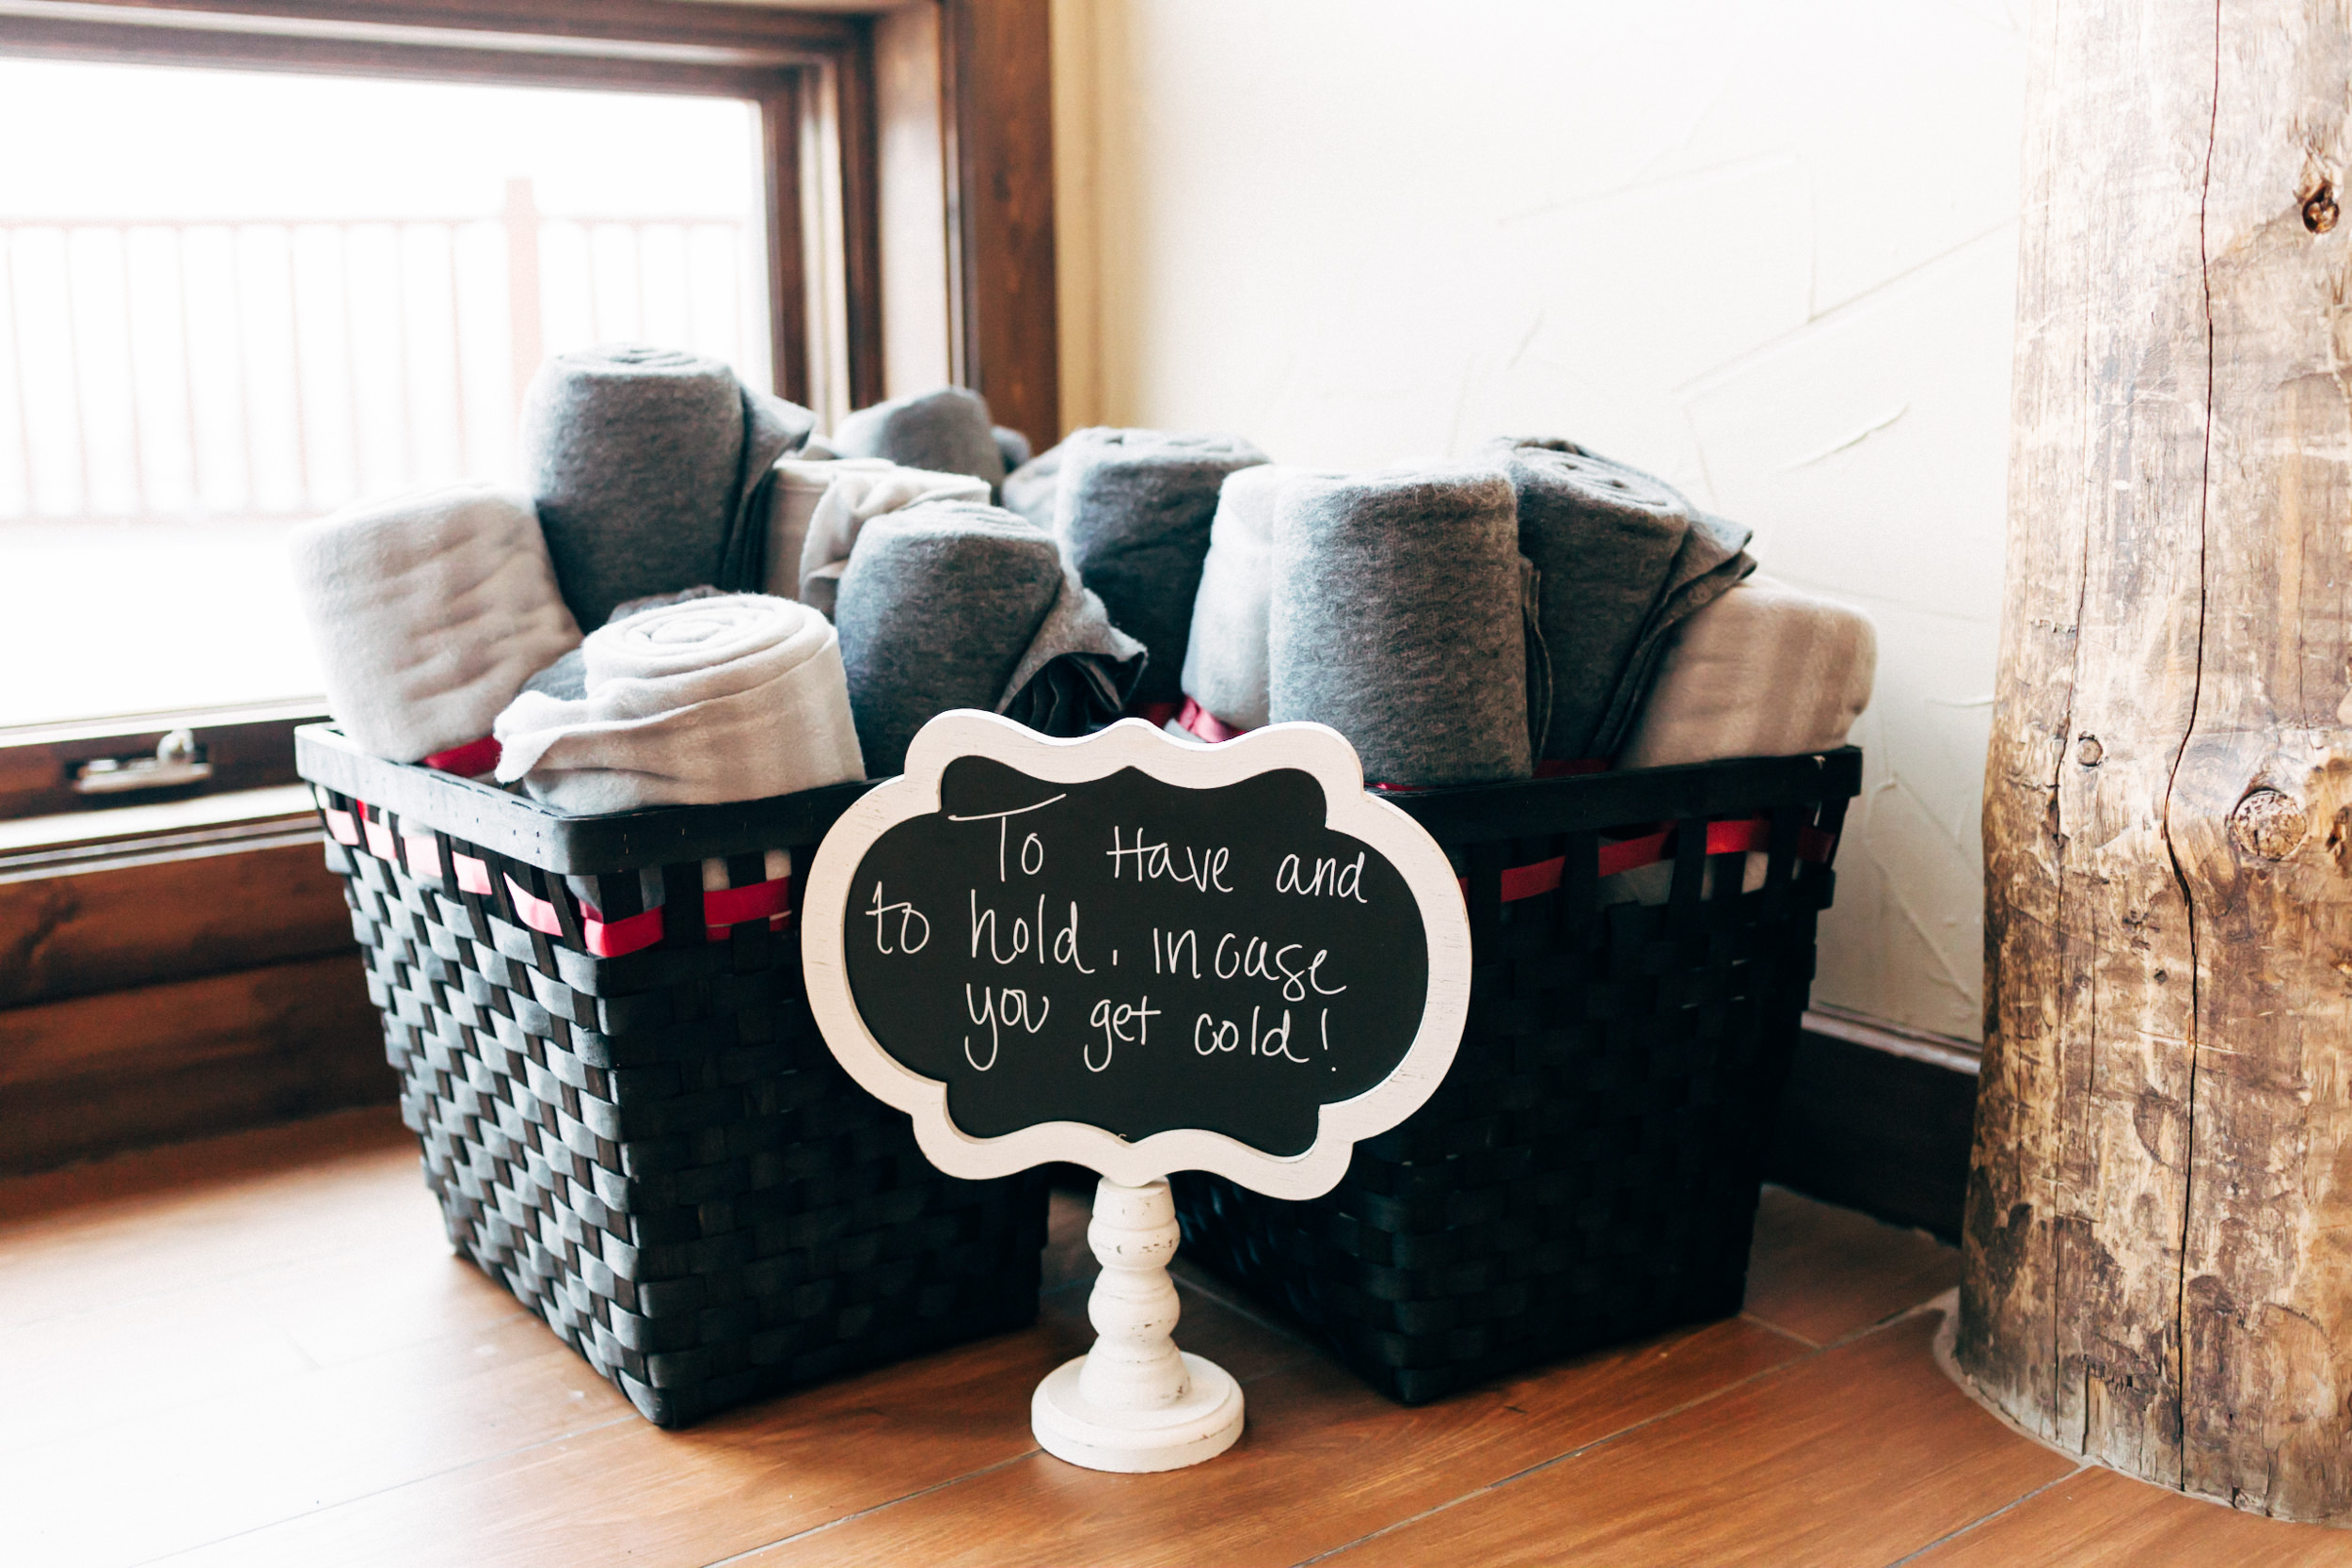 Warm loving blankets to keep guest warm at wedding ceremony at The Lodge in Breckenridge, Colorado. Colorado wedding photographer.